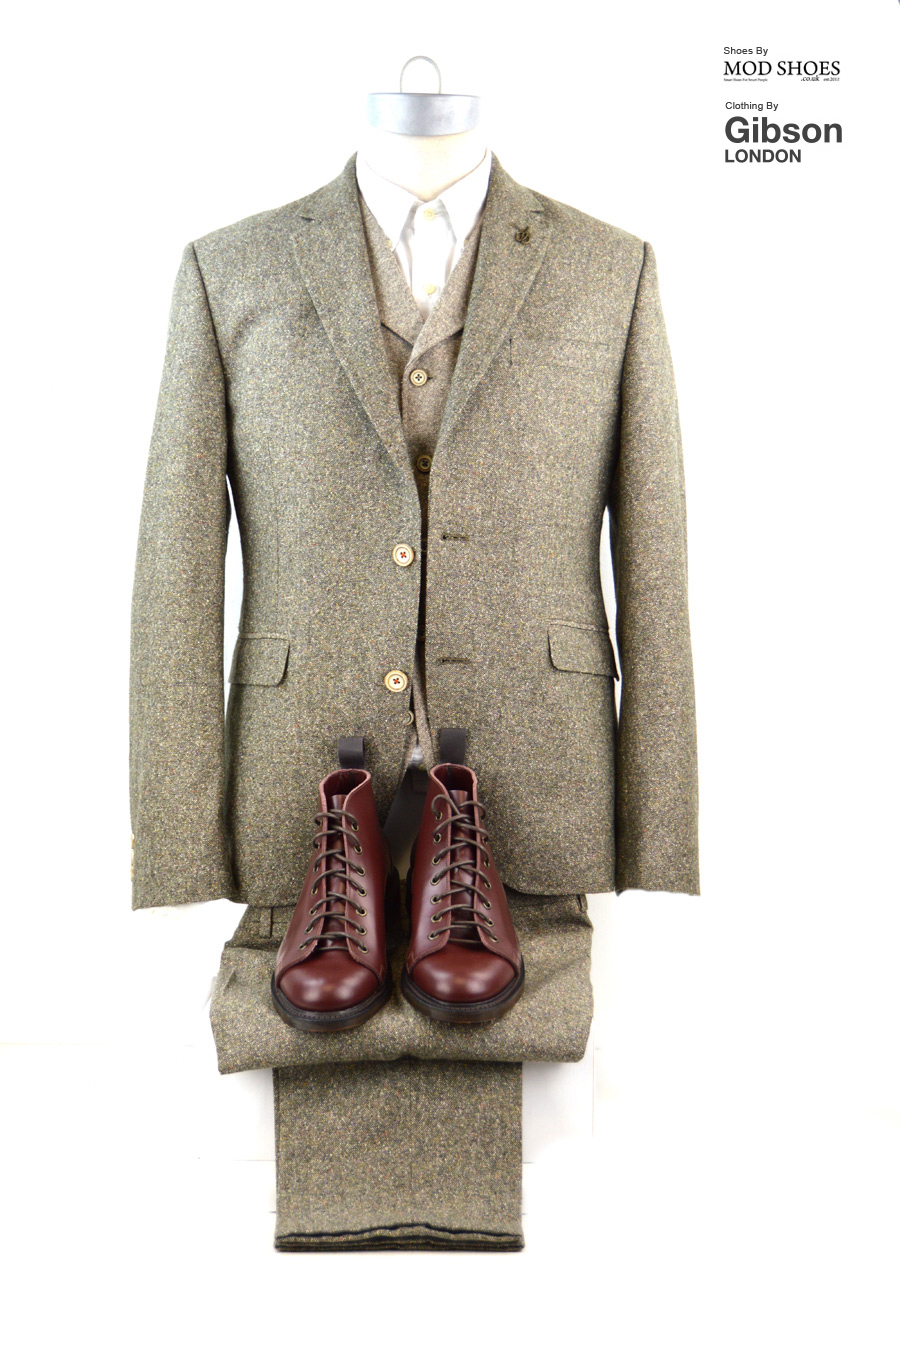 modshoes-monkey-boots-oxblood-with-Gibson-suit-01